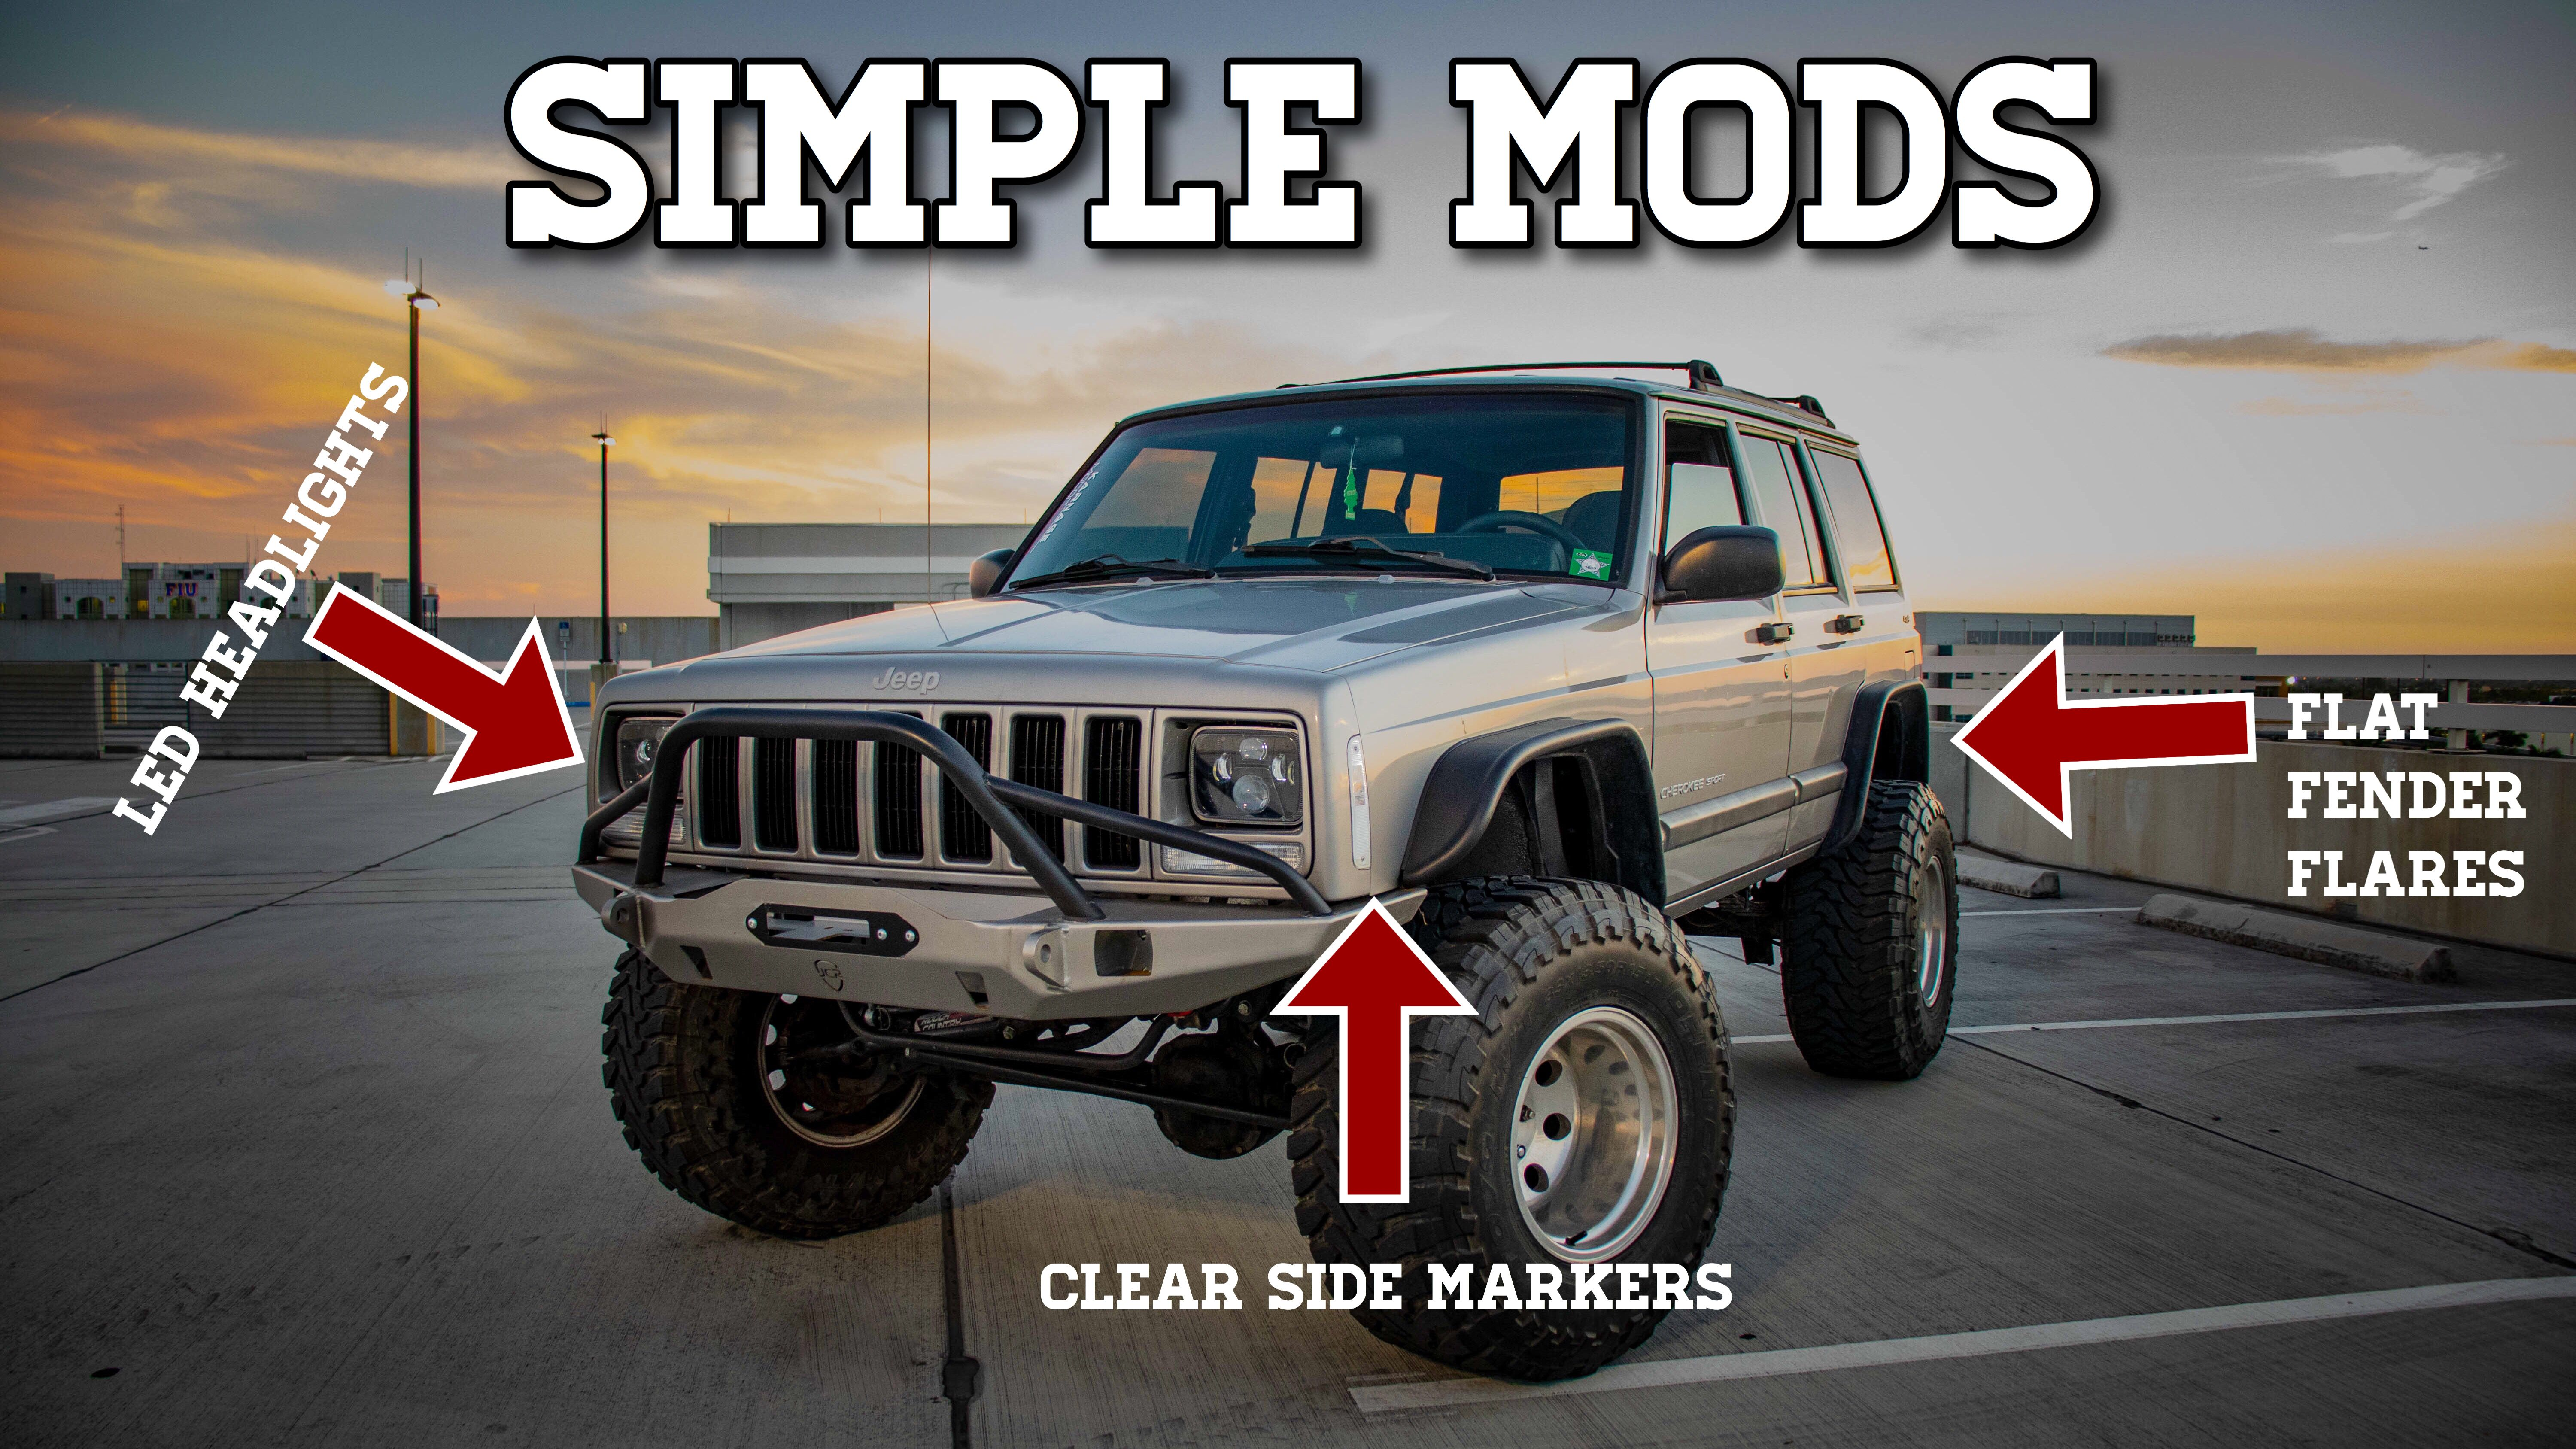 Jeep Cherokee Xj Simple Mods Jeep Jeep Cherokee Xj Jeep Wj